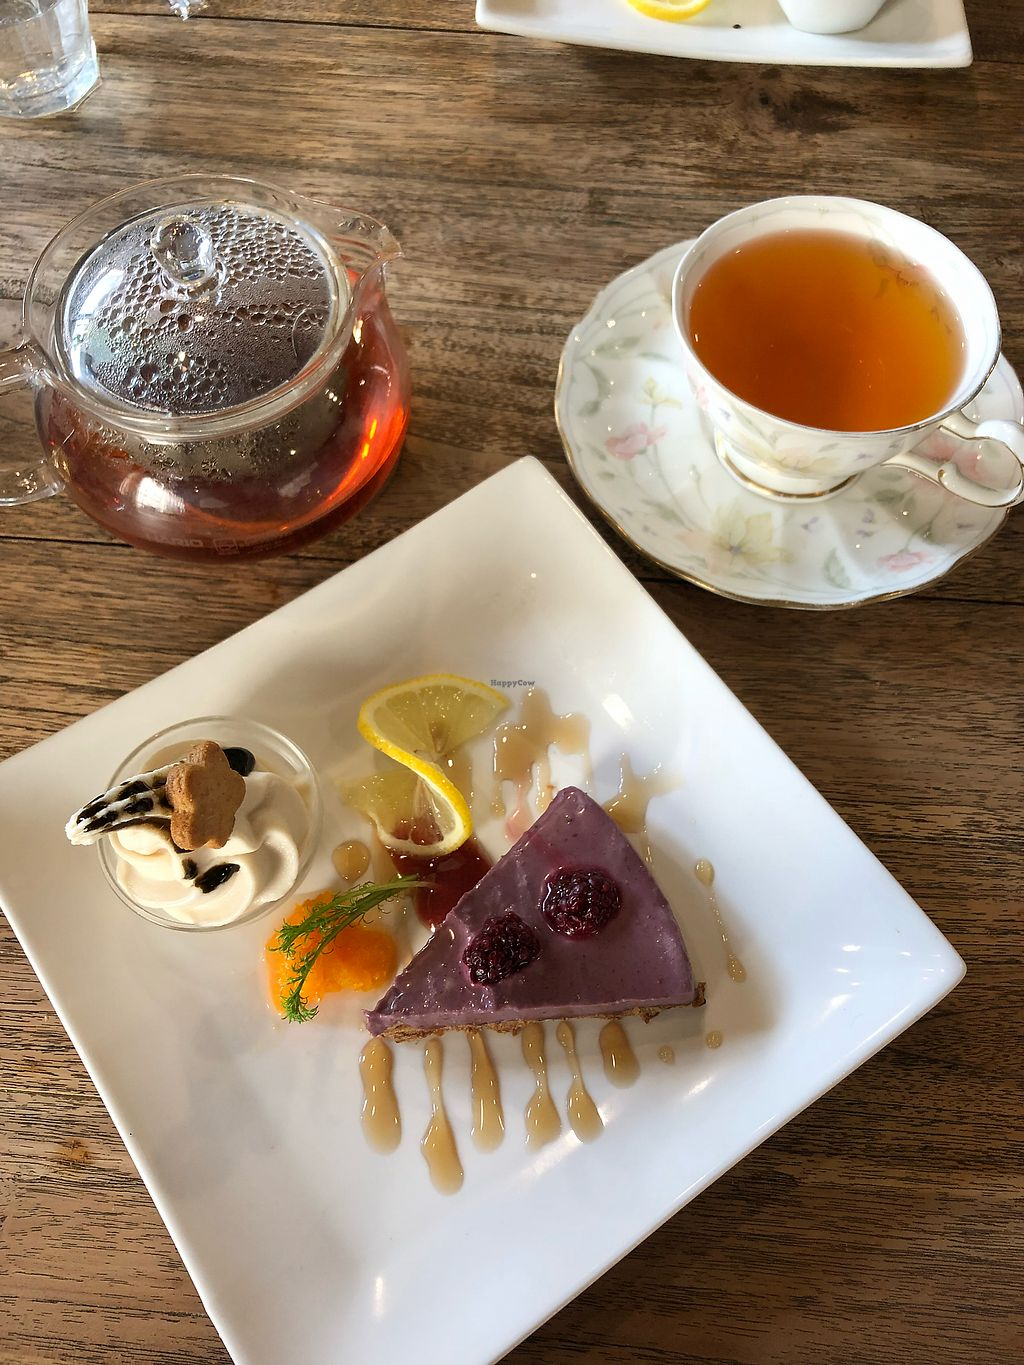 """Photo of Vegans Cafe and Restaurant  by <a href=""""/members/profile/Adalim420"""">Adalim420</a> <br/>Cheesecake was amazing, and so was the ice-cream! <br/> March 13, 2018  - <a href='/contact/abuse/image/29114/370270'>Report</a>"""